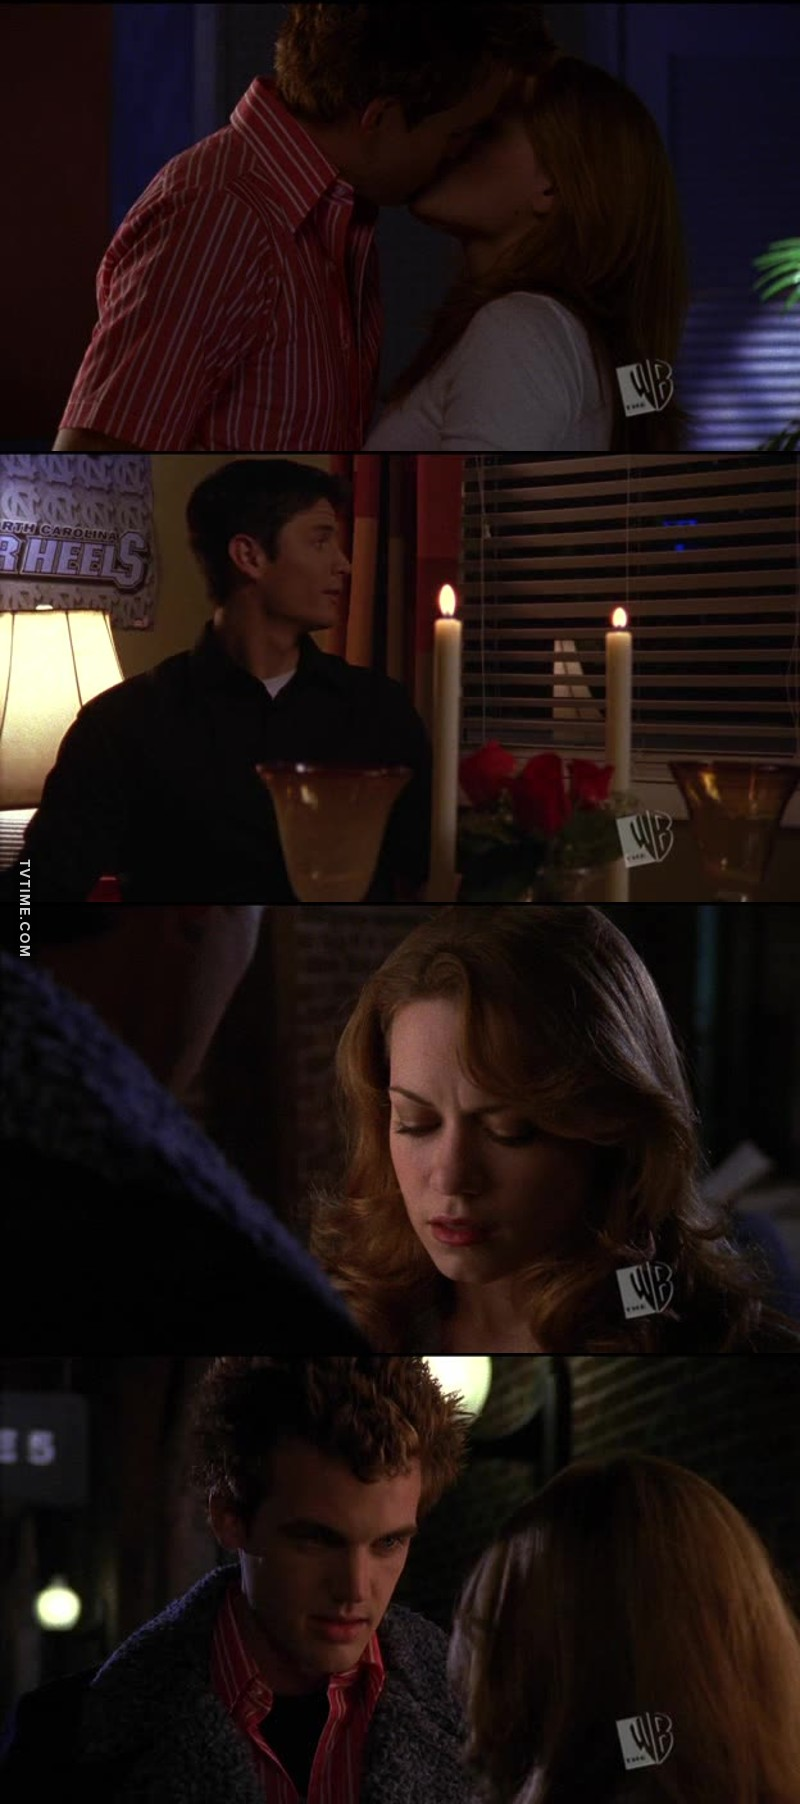 how could you Haley James-Scott? She is one of my fav characters but i am so dissapointed